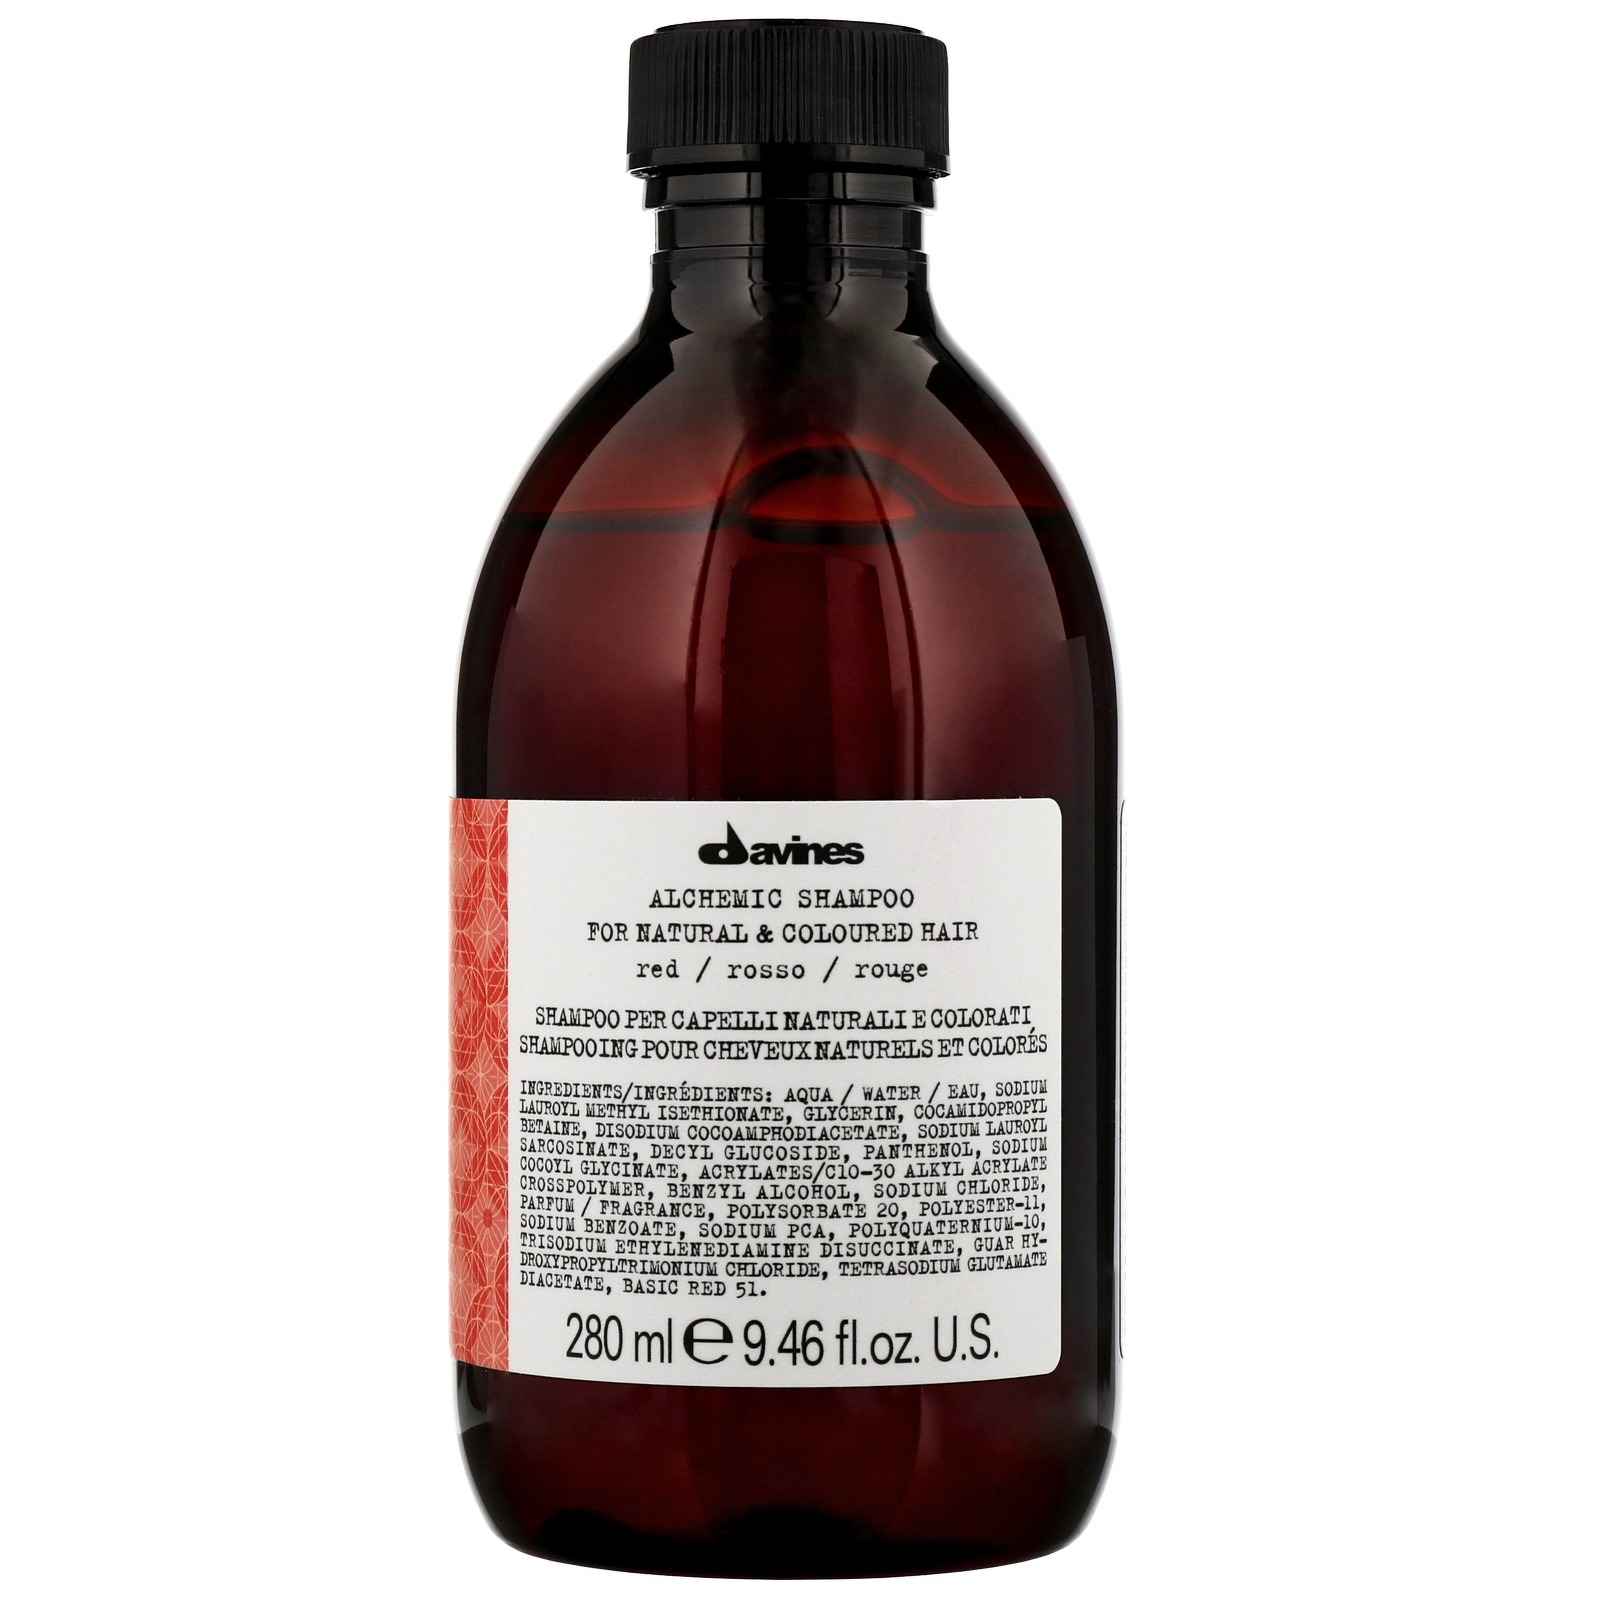 Davines Alchemic Red Shampoo Красный шампунь (280 ml) 67211